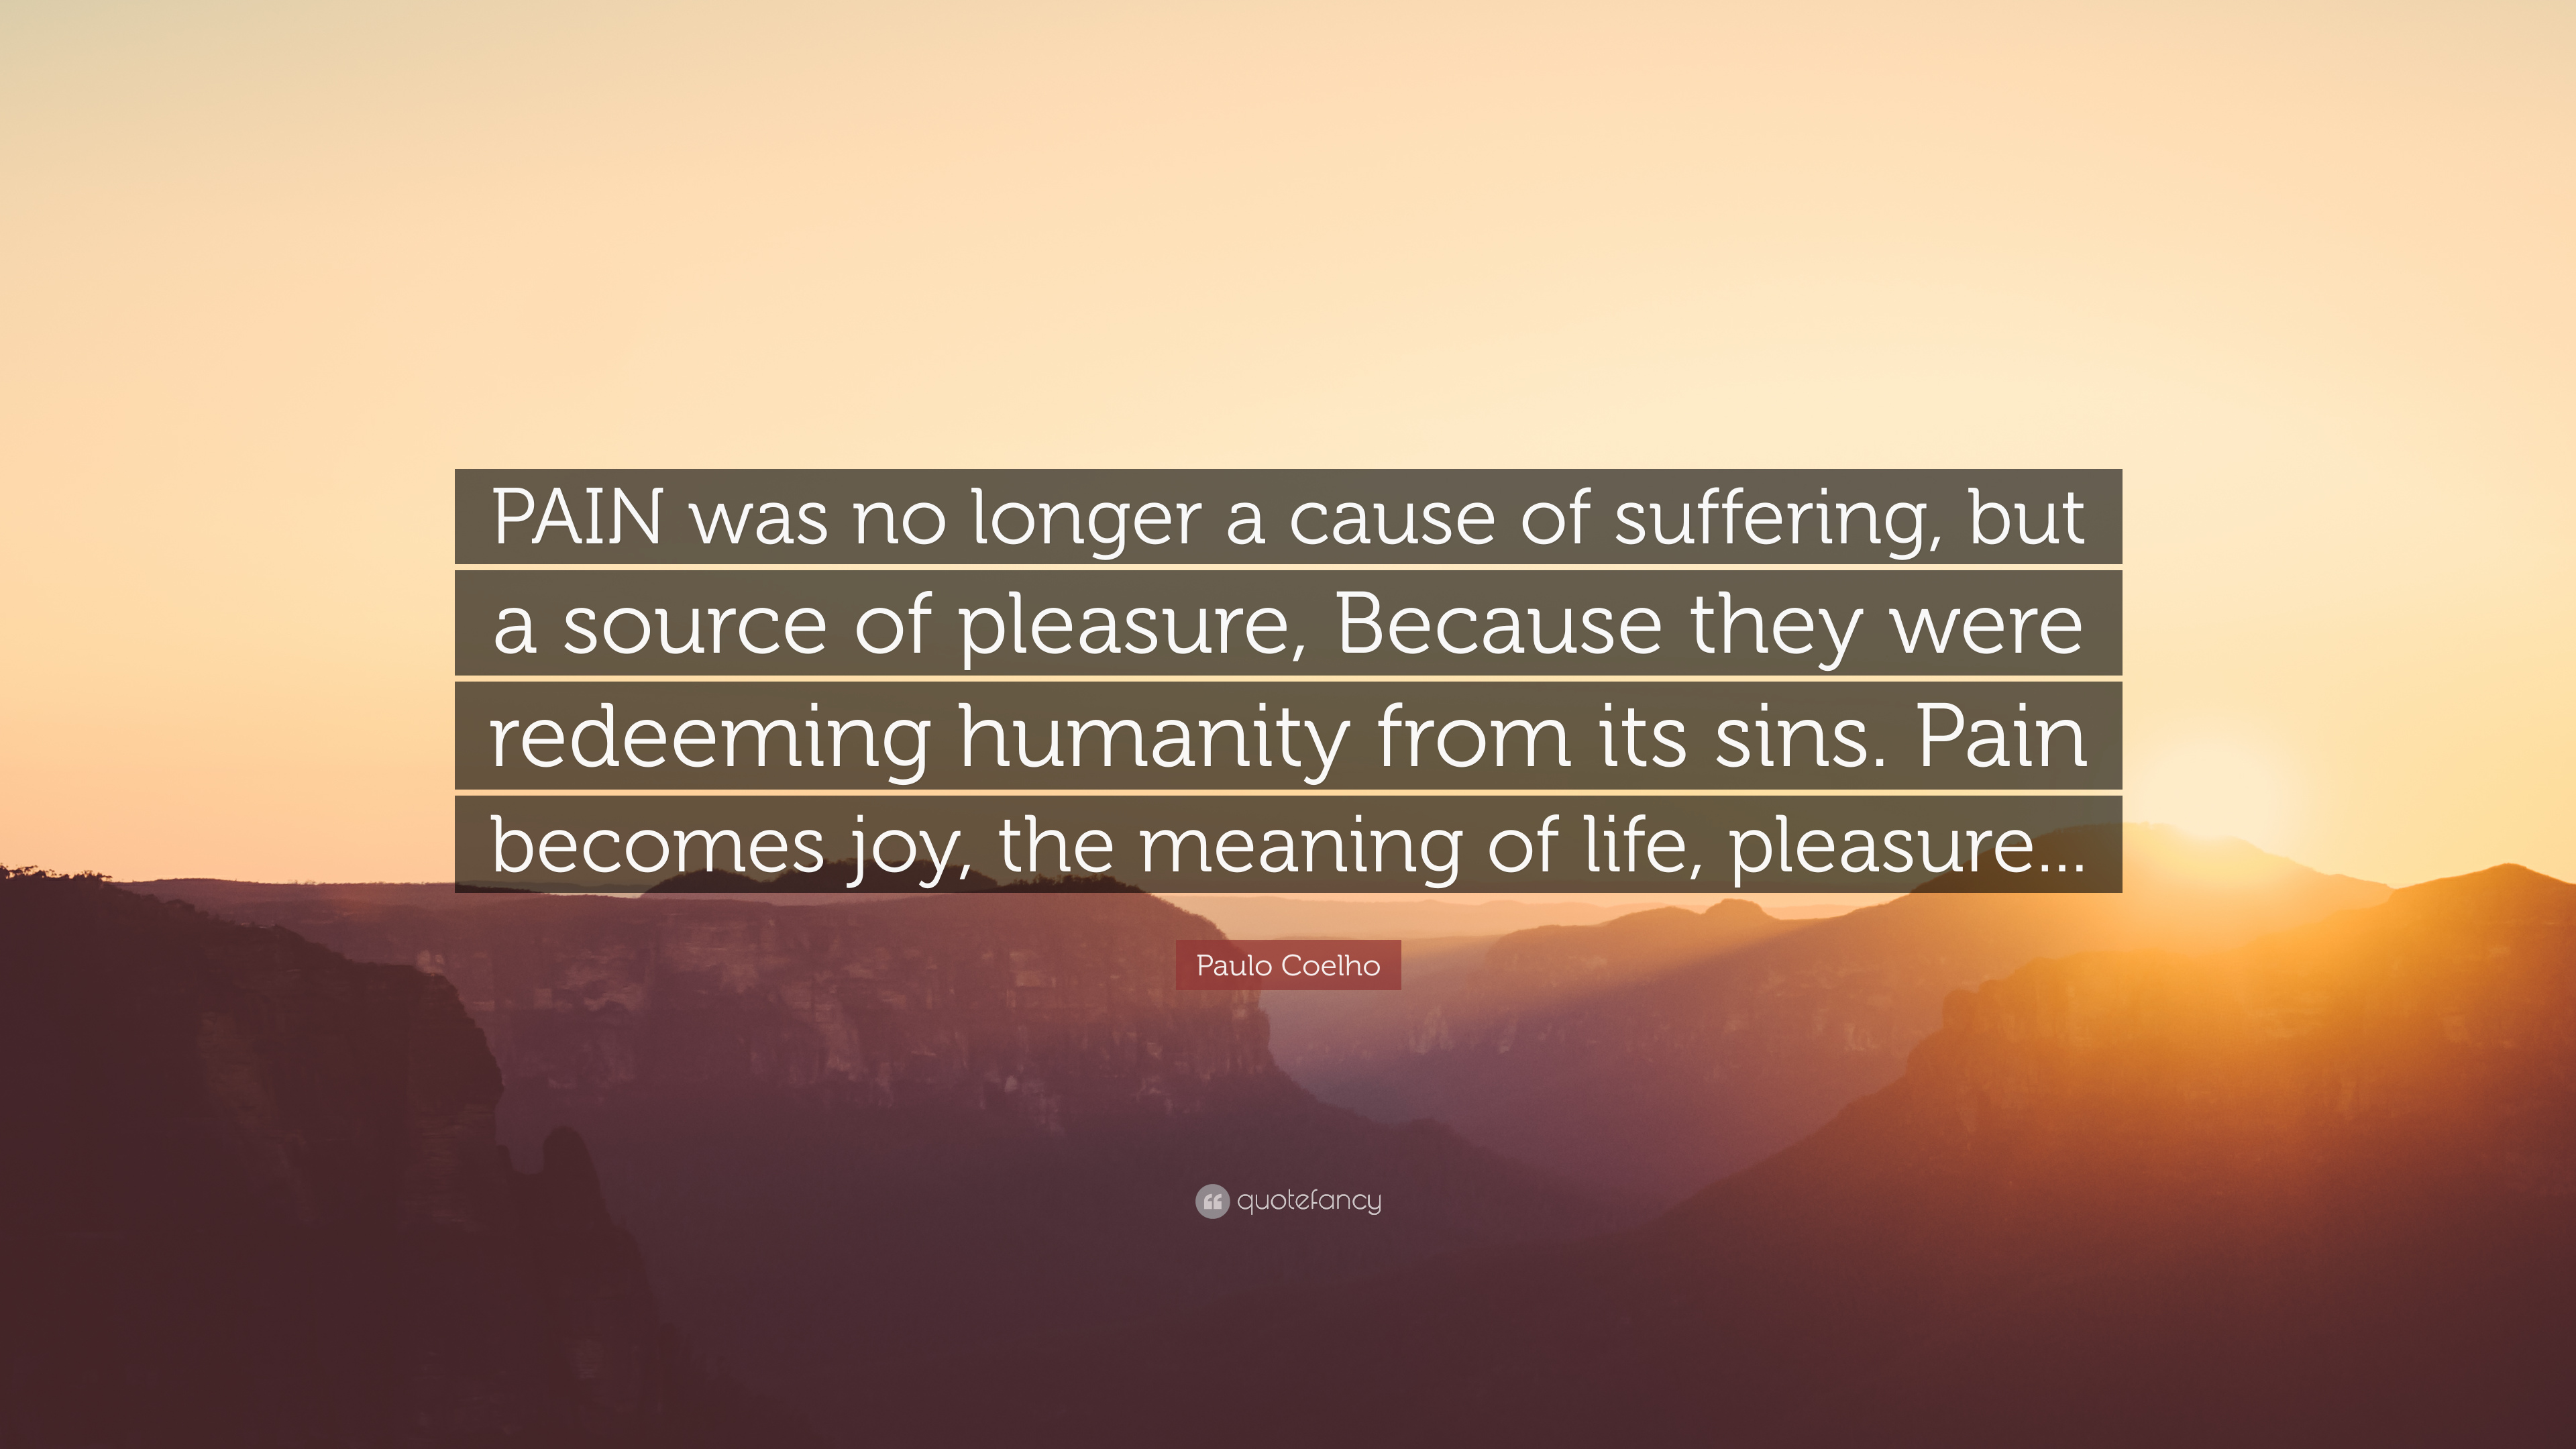 """Paulo Coelho Quote: """"PAIN was no longer a cause of suffering"""